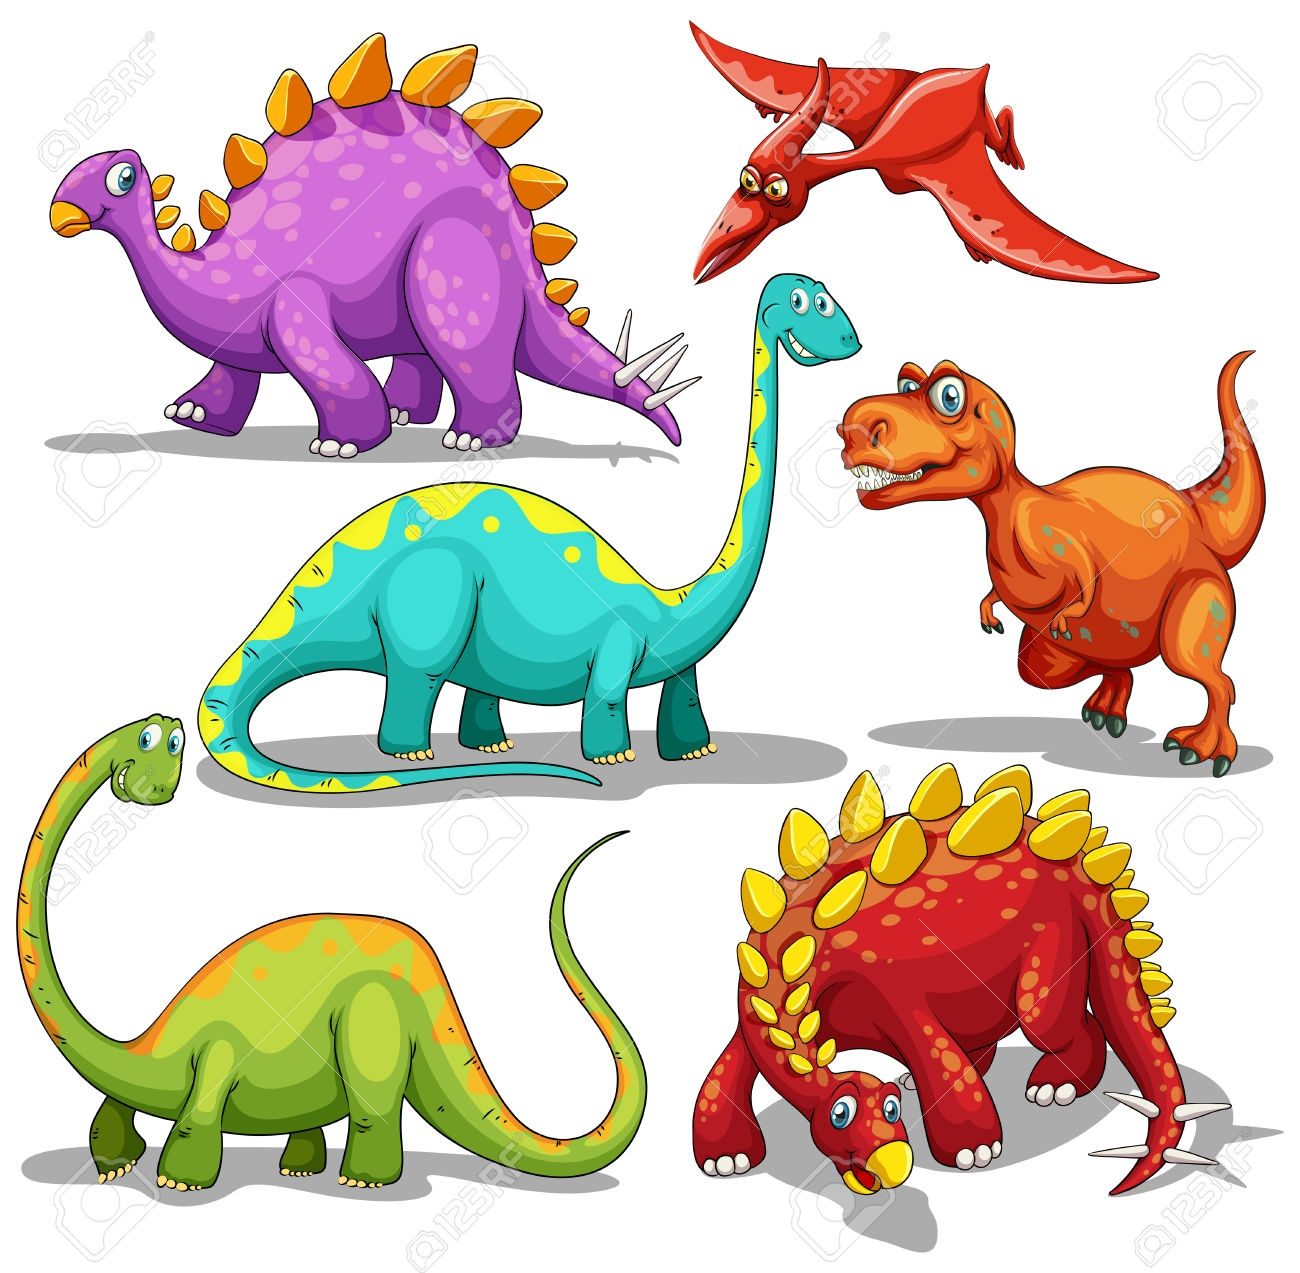 Dinosaurs clipart 20 free Cliparts   Download images on ...